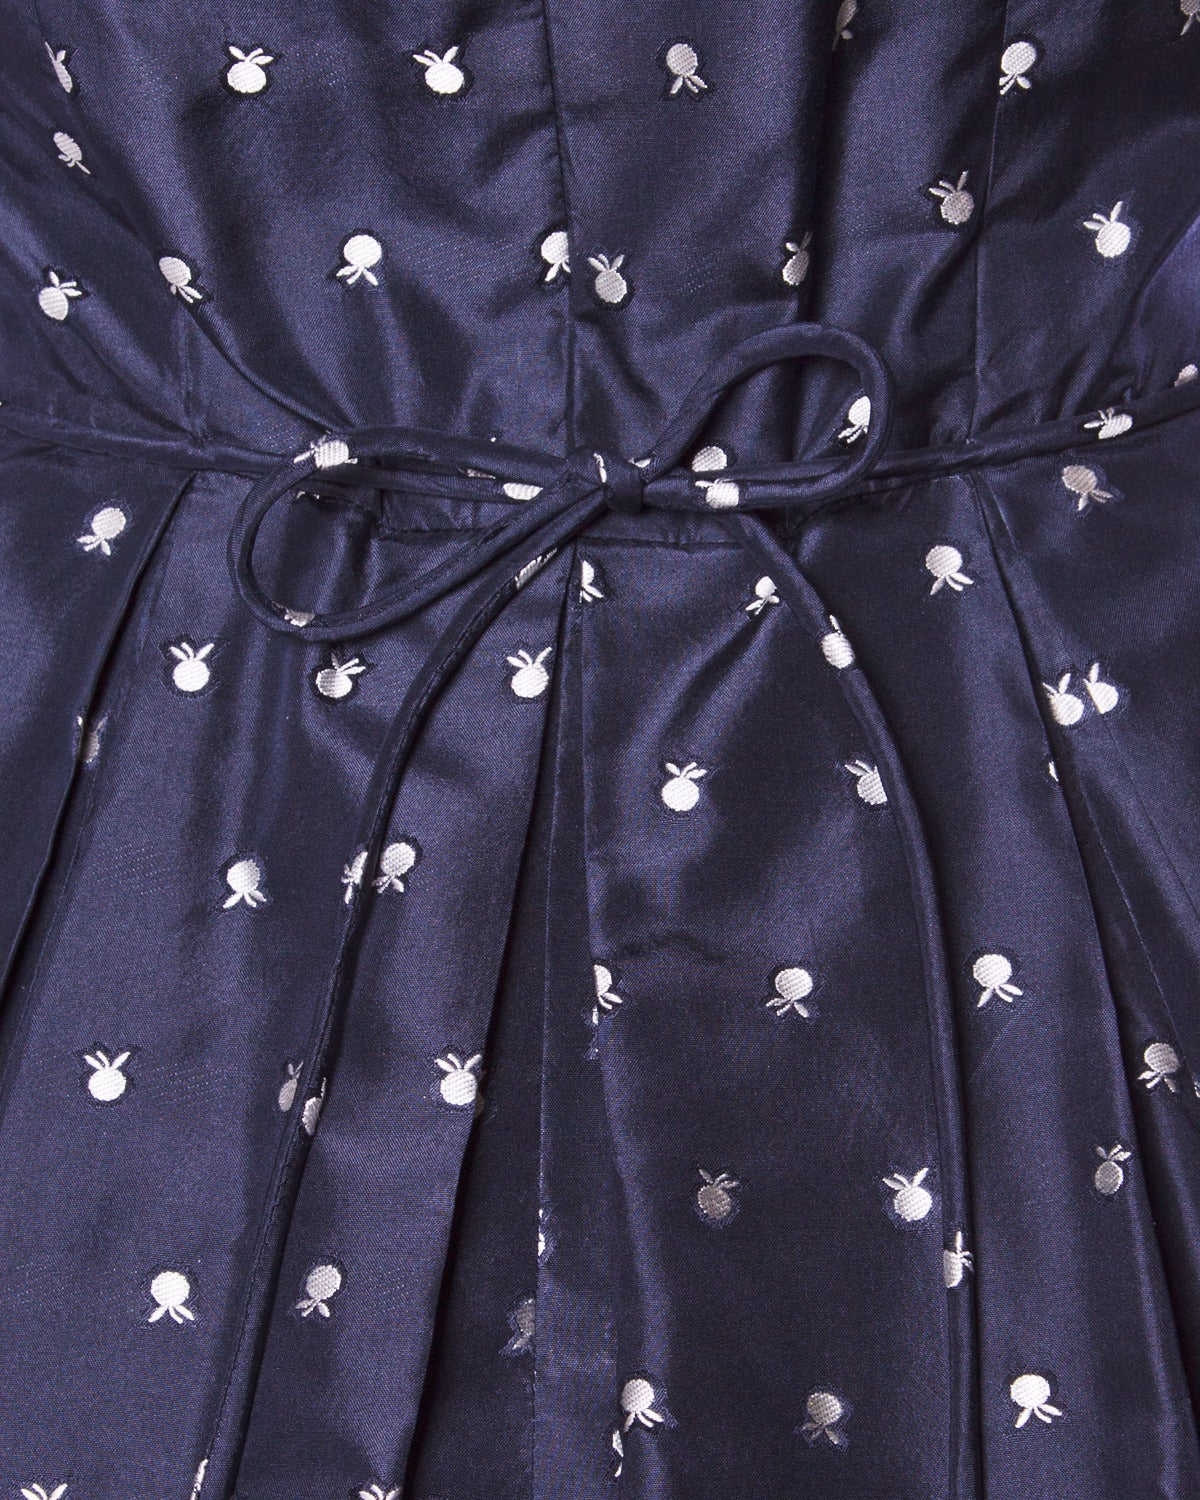 Ceil Chapman Vintage 1950s 50s Fruit Print Navy Silk Dress with Box Pleats For Sale 1